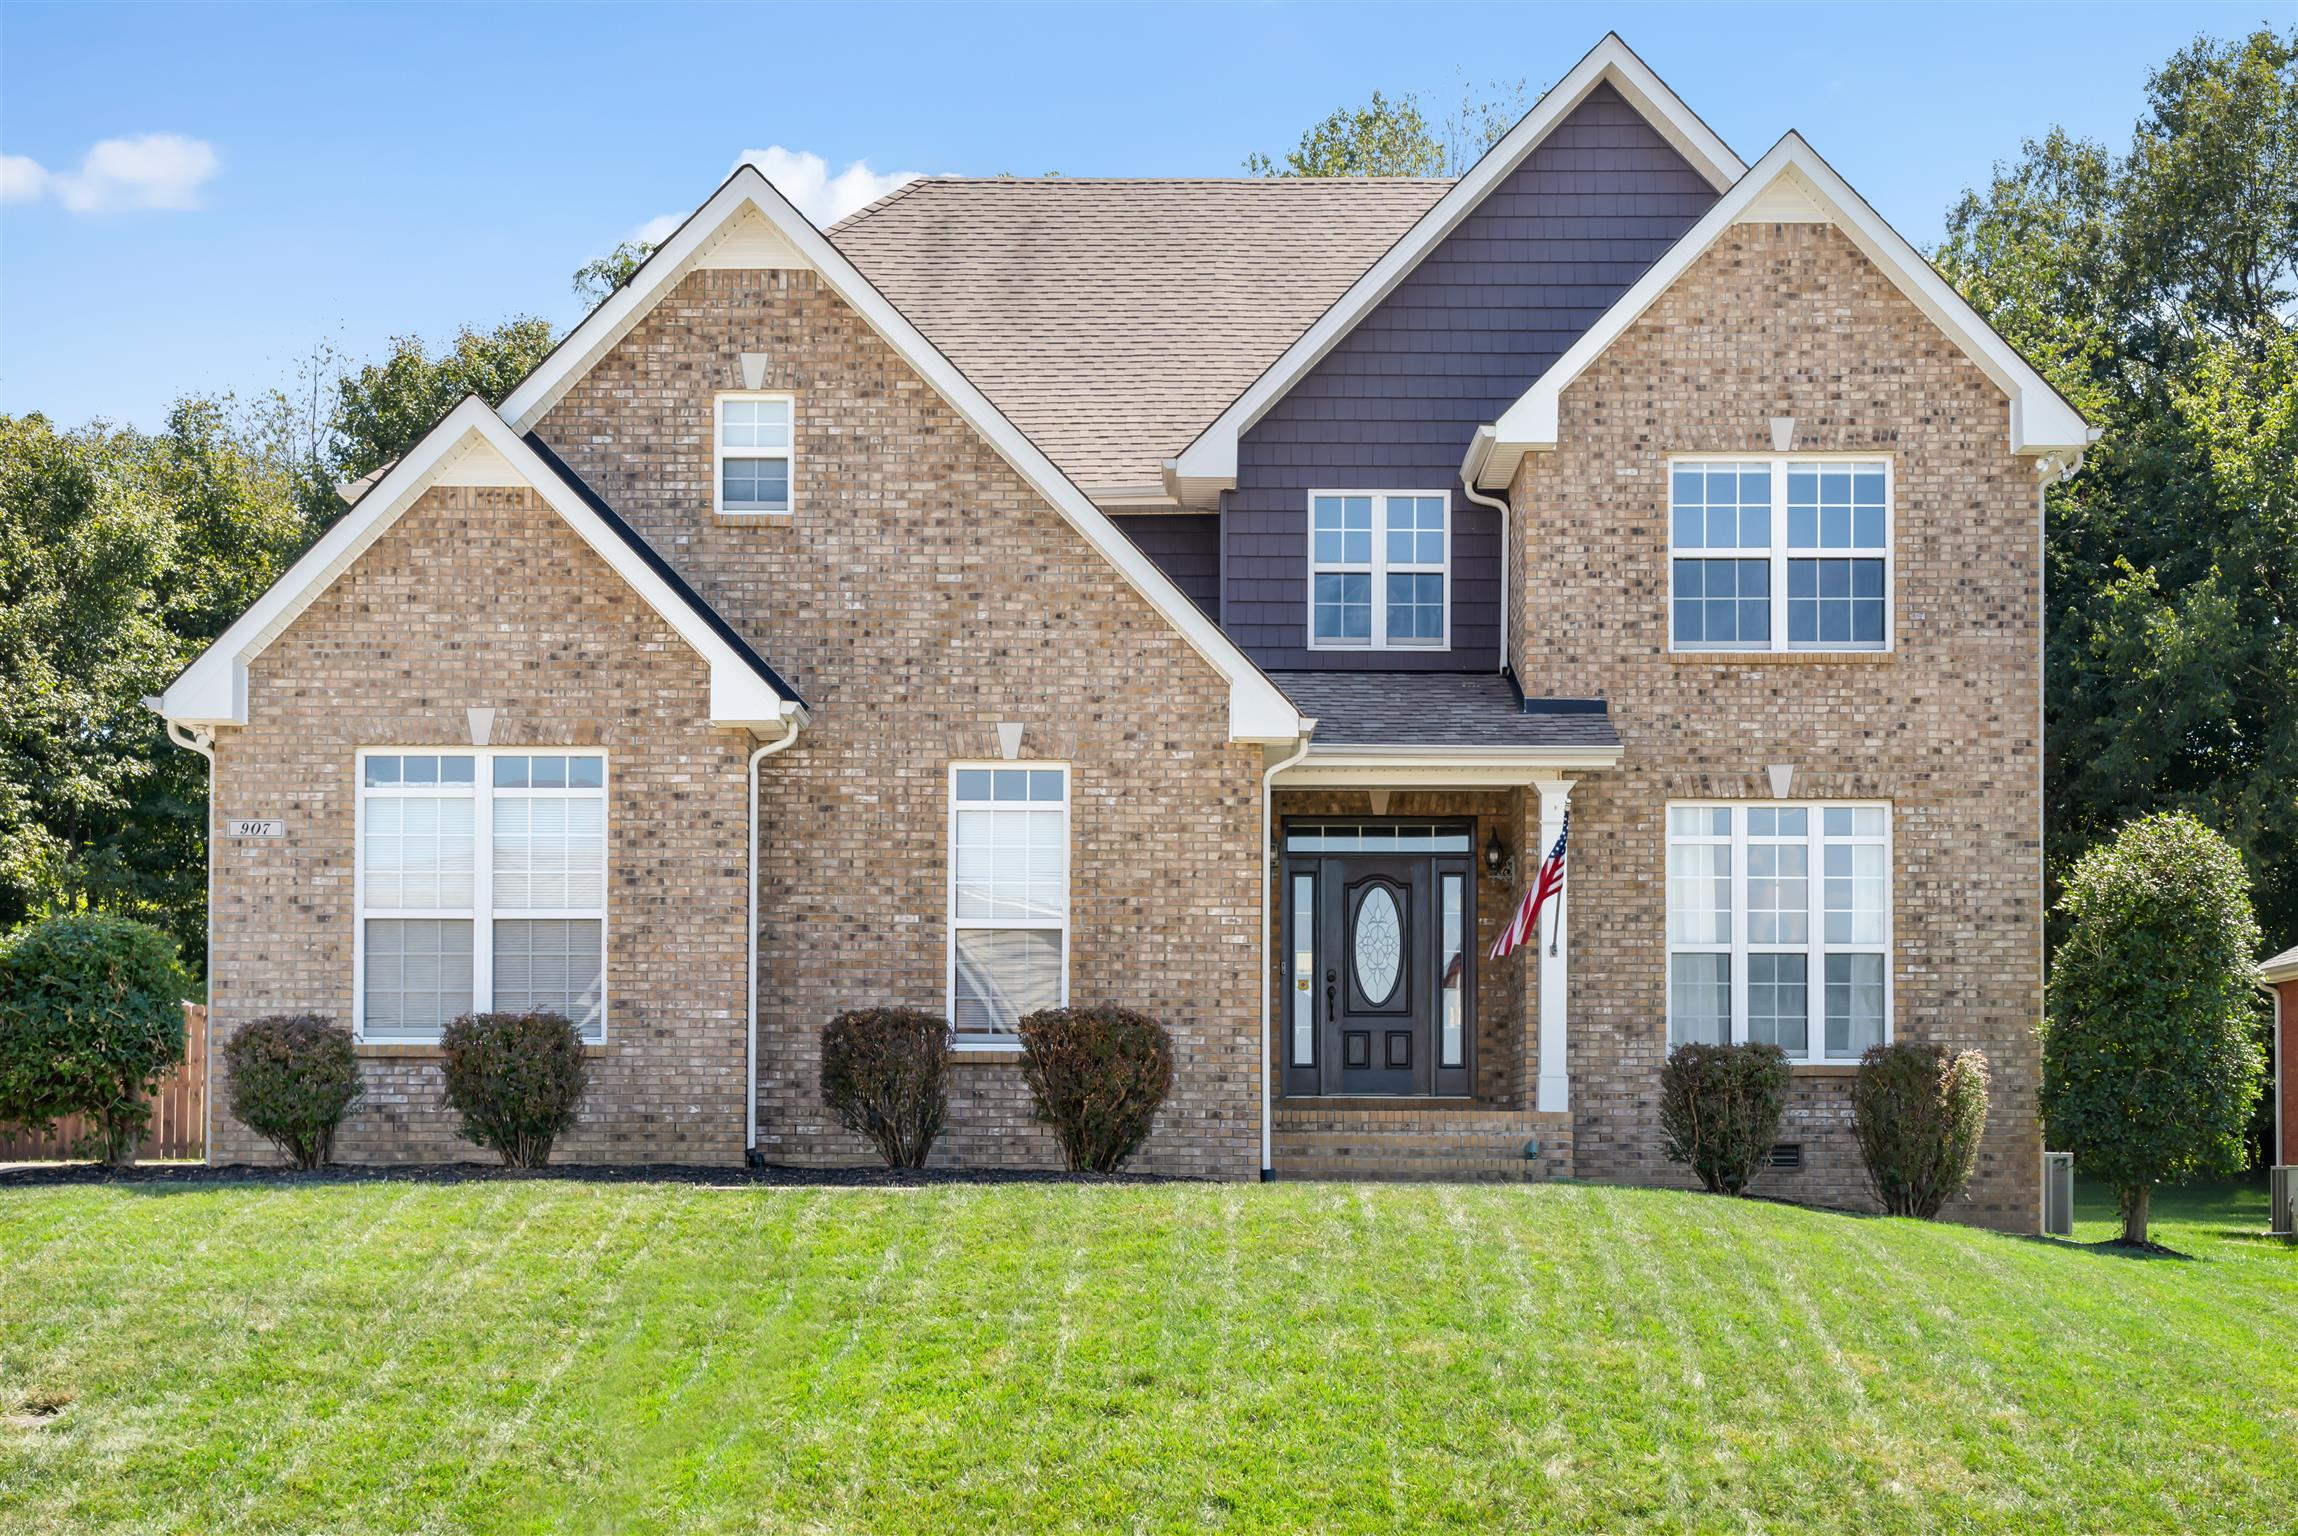 907 Terraceside Circle, Clarksville, TN 37040 - Clarksville, TN real estate listing